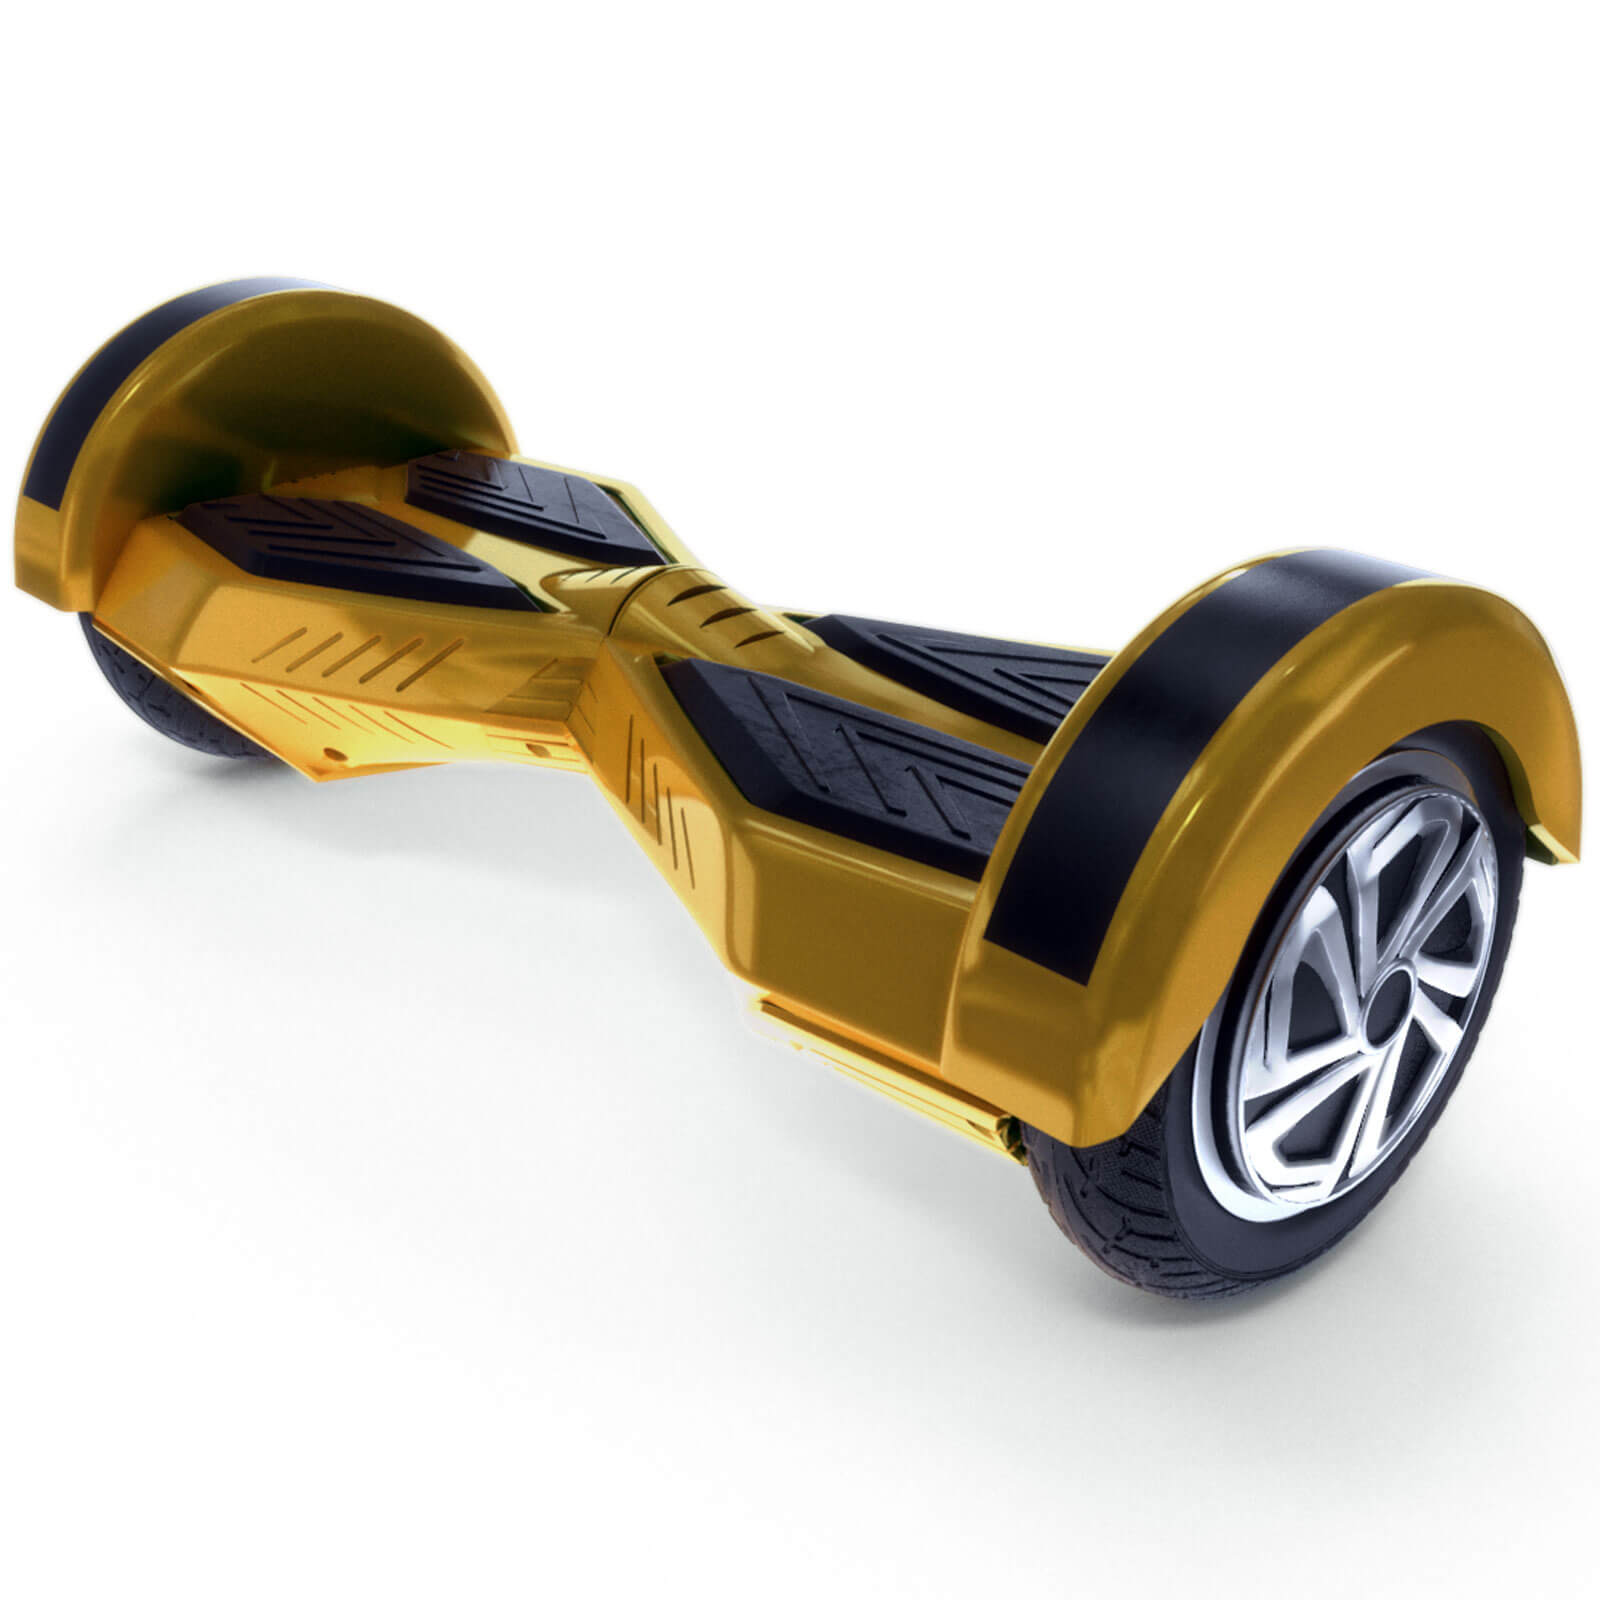 hoverboard 8 inch gold1